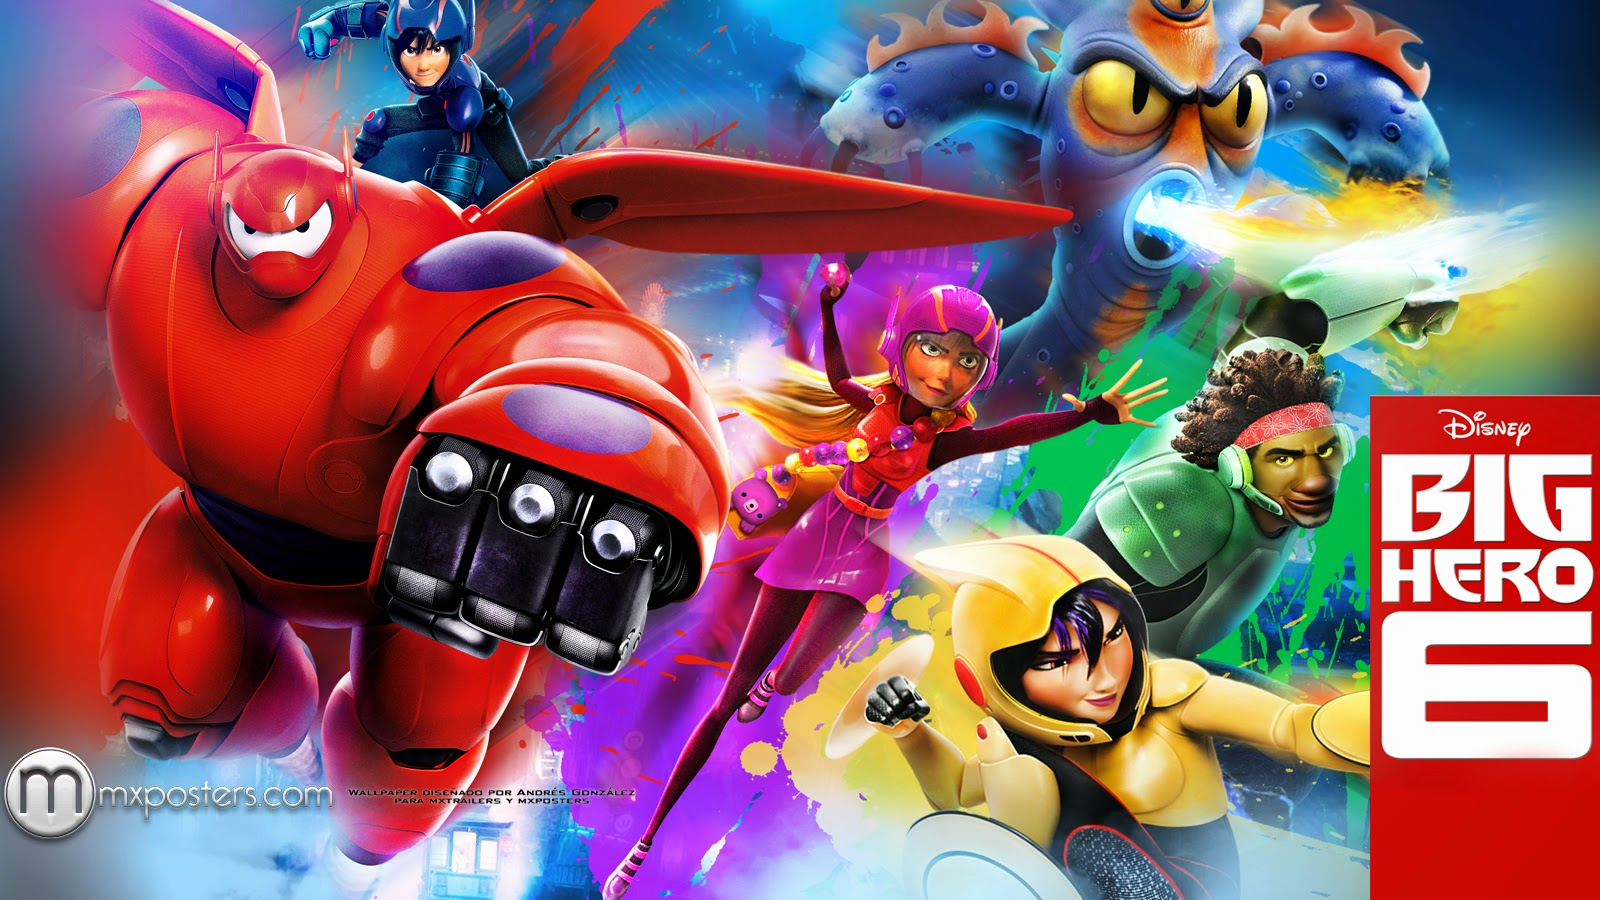 Big Hero 6 Wallpapers 2014 Disney Wallpaper Movies 83499 high 1600x900